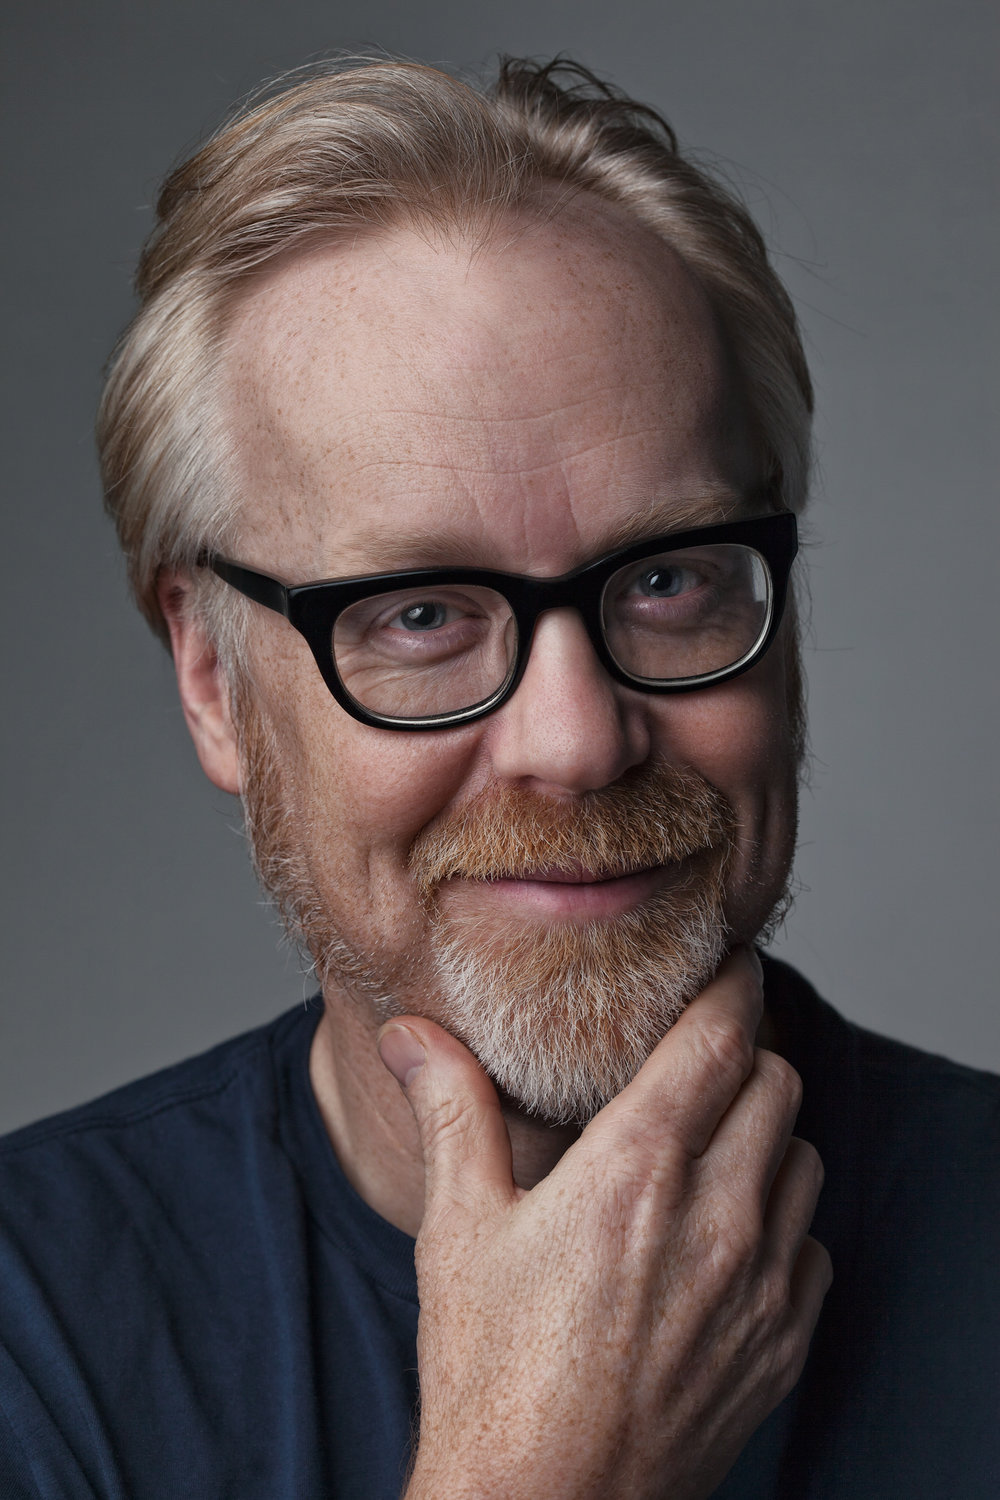 Adam_Savage_9564-Edit.jpg